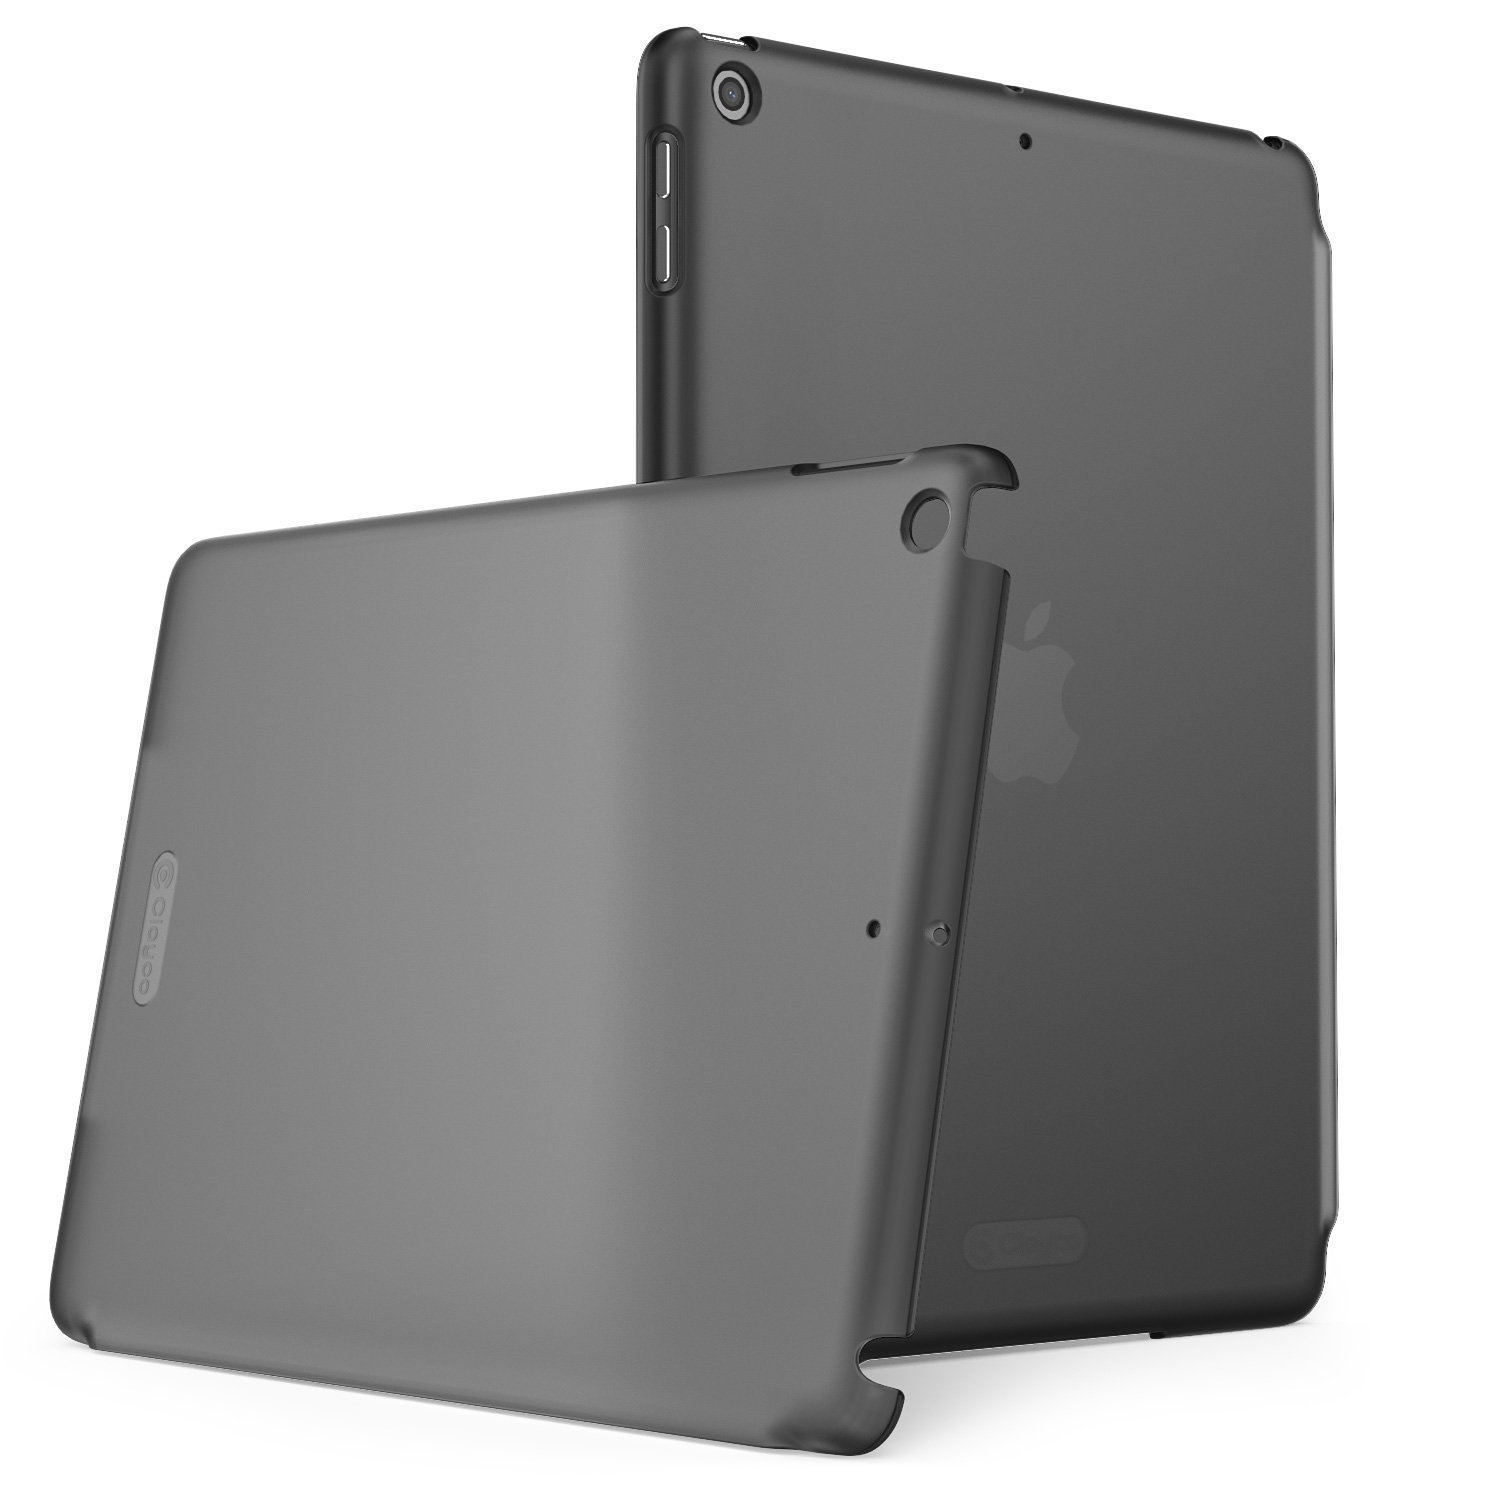 New iPad 9.7 2018/2017 Case, Clayco Clear Back Protector Lightweight Slim Fit for iPad 9.7 Case [Compatible with Offical Apple Smart Covers and Keyboard] (Frost/Black)